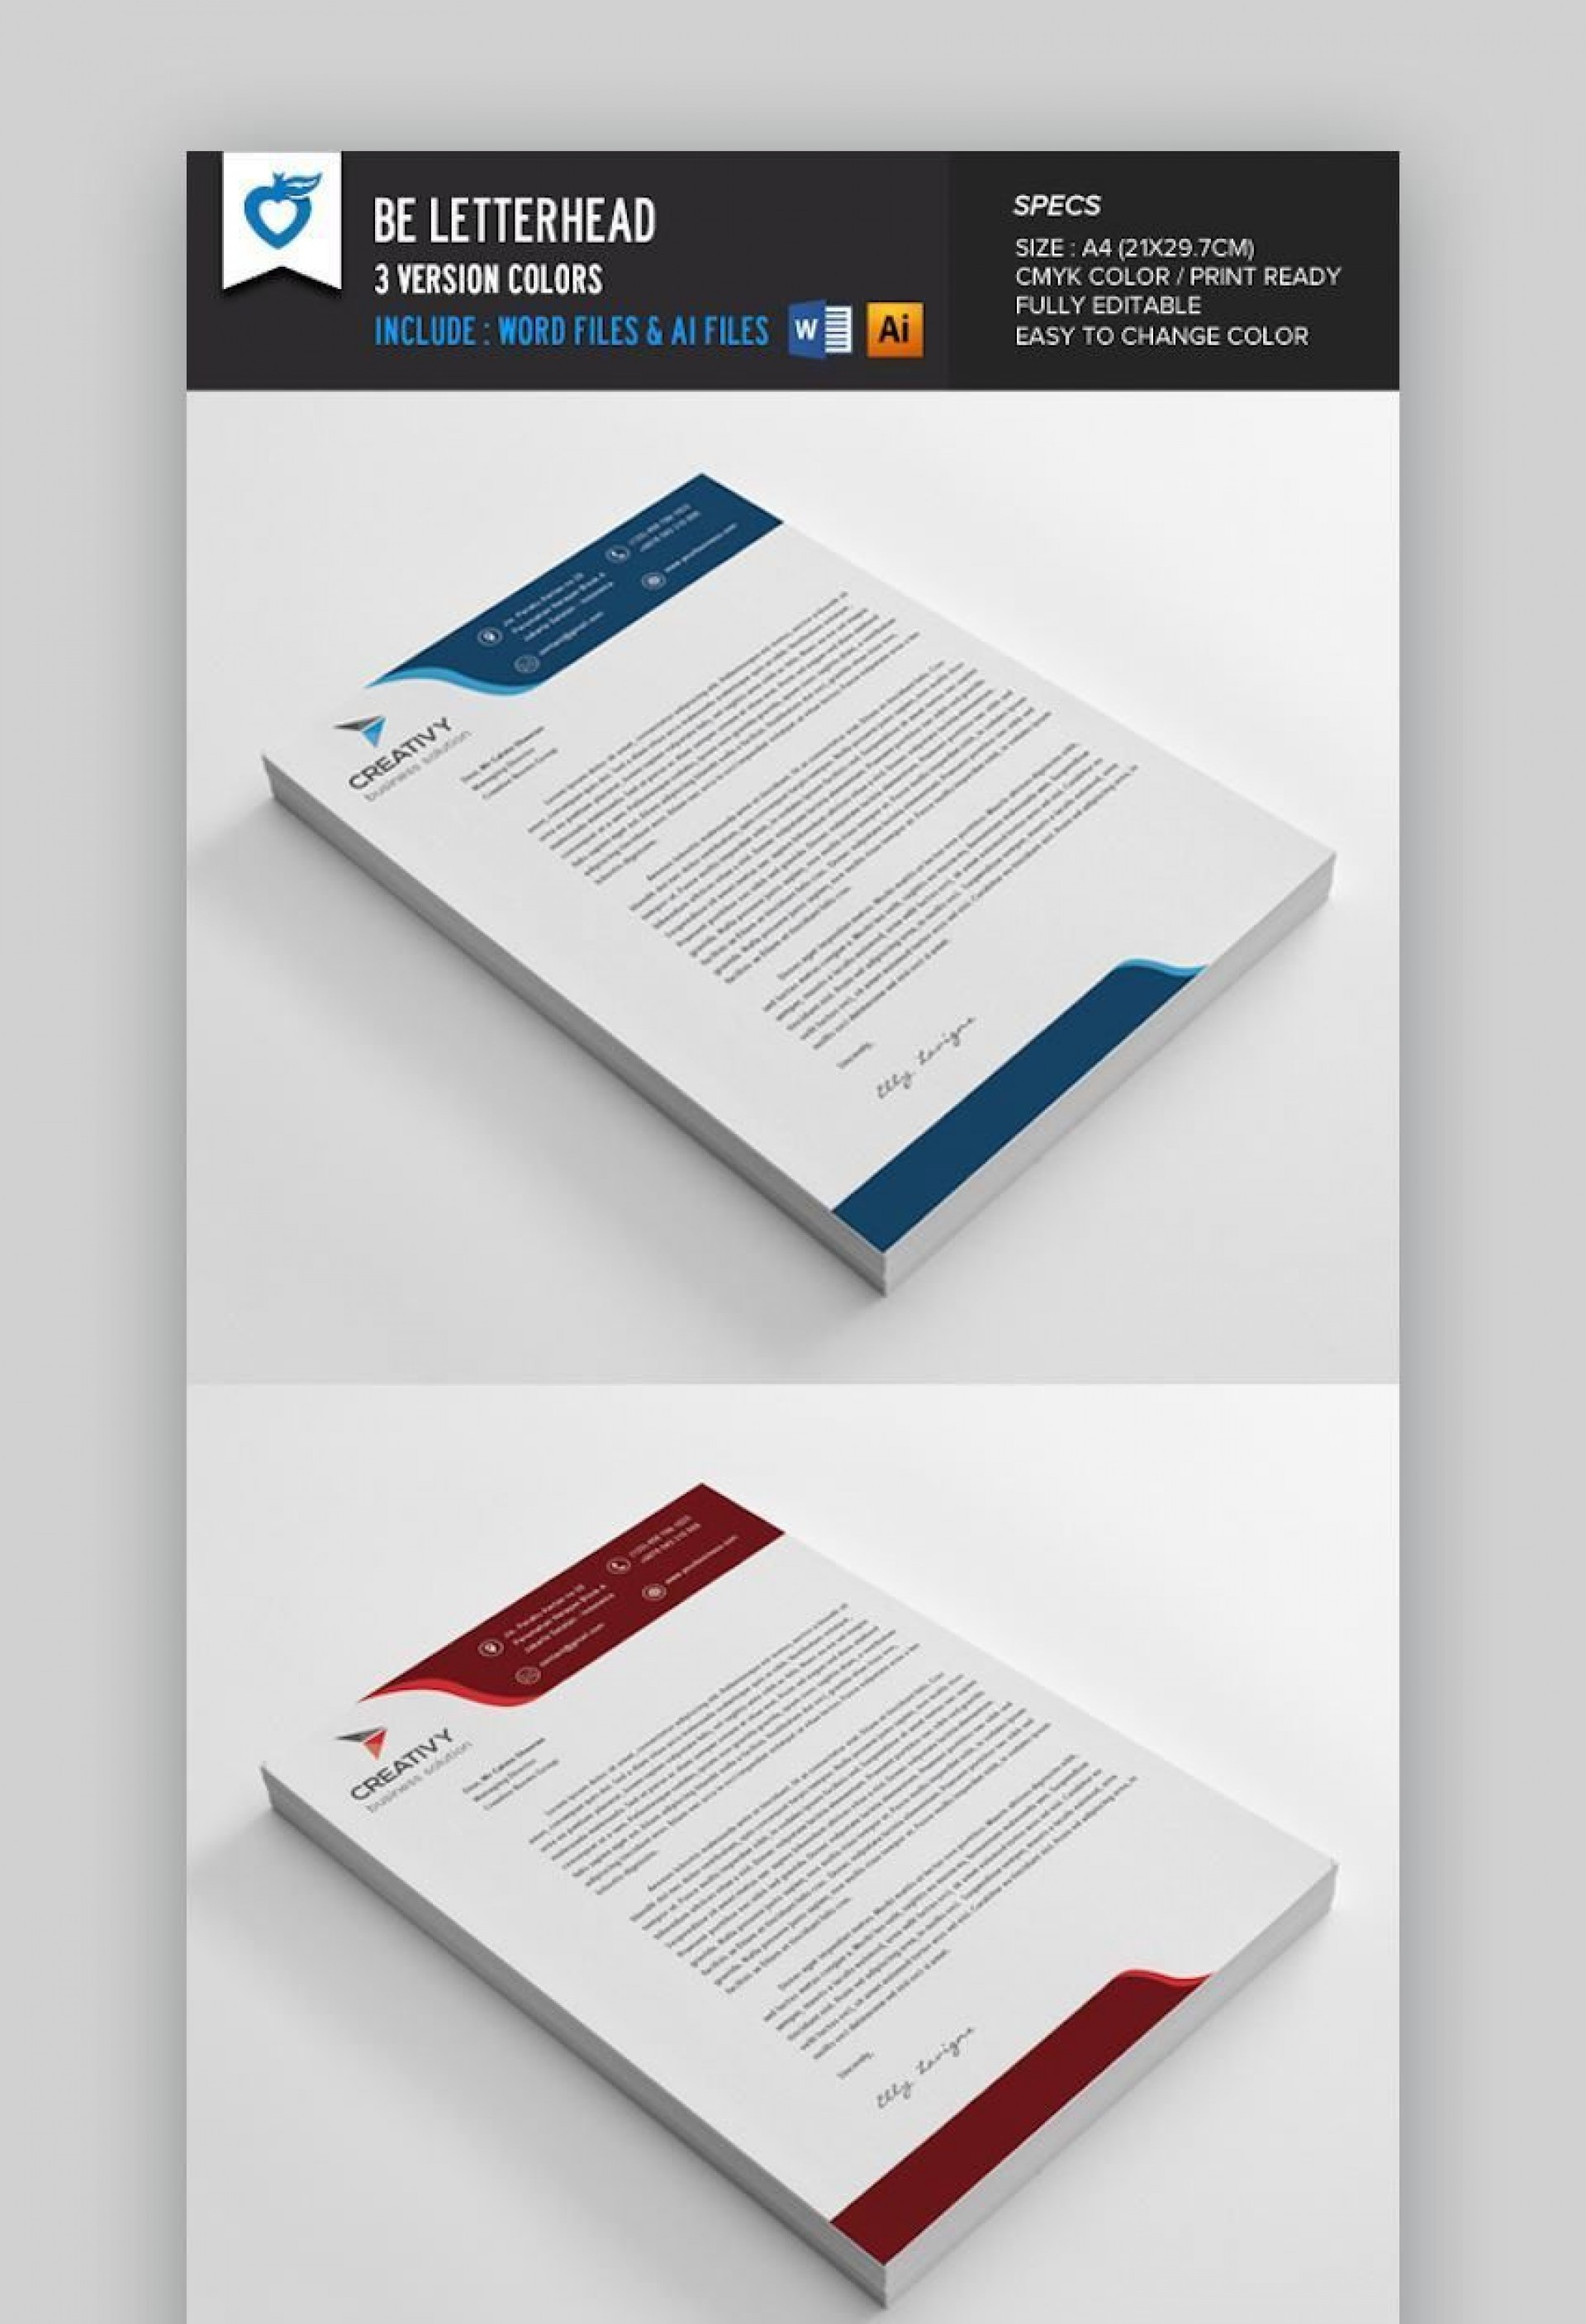 005 Unbelievable Free Letterhead Template Download Highest Clarity  Word Psd Sample1920